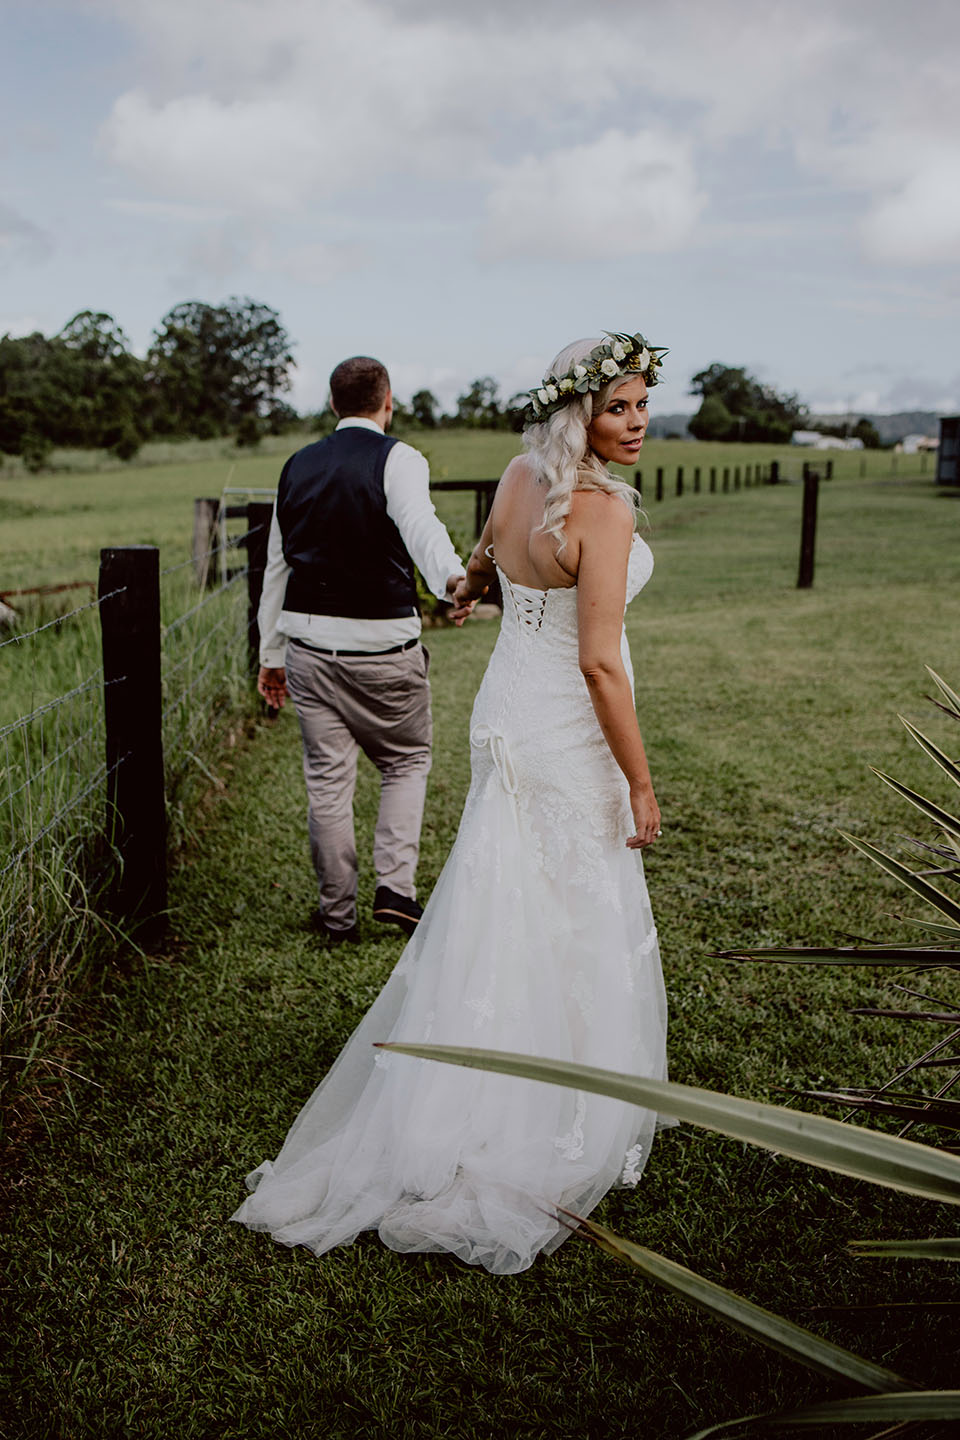 Bride and groom walking, wedding photography, Alice Payne photography